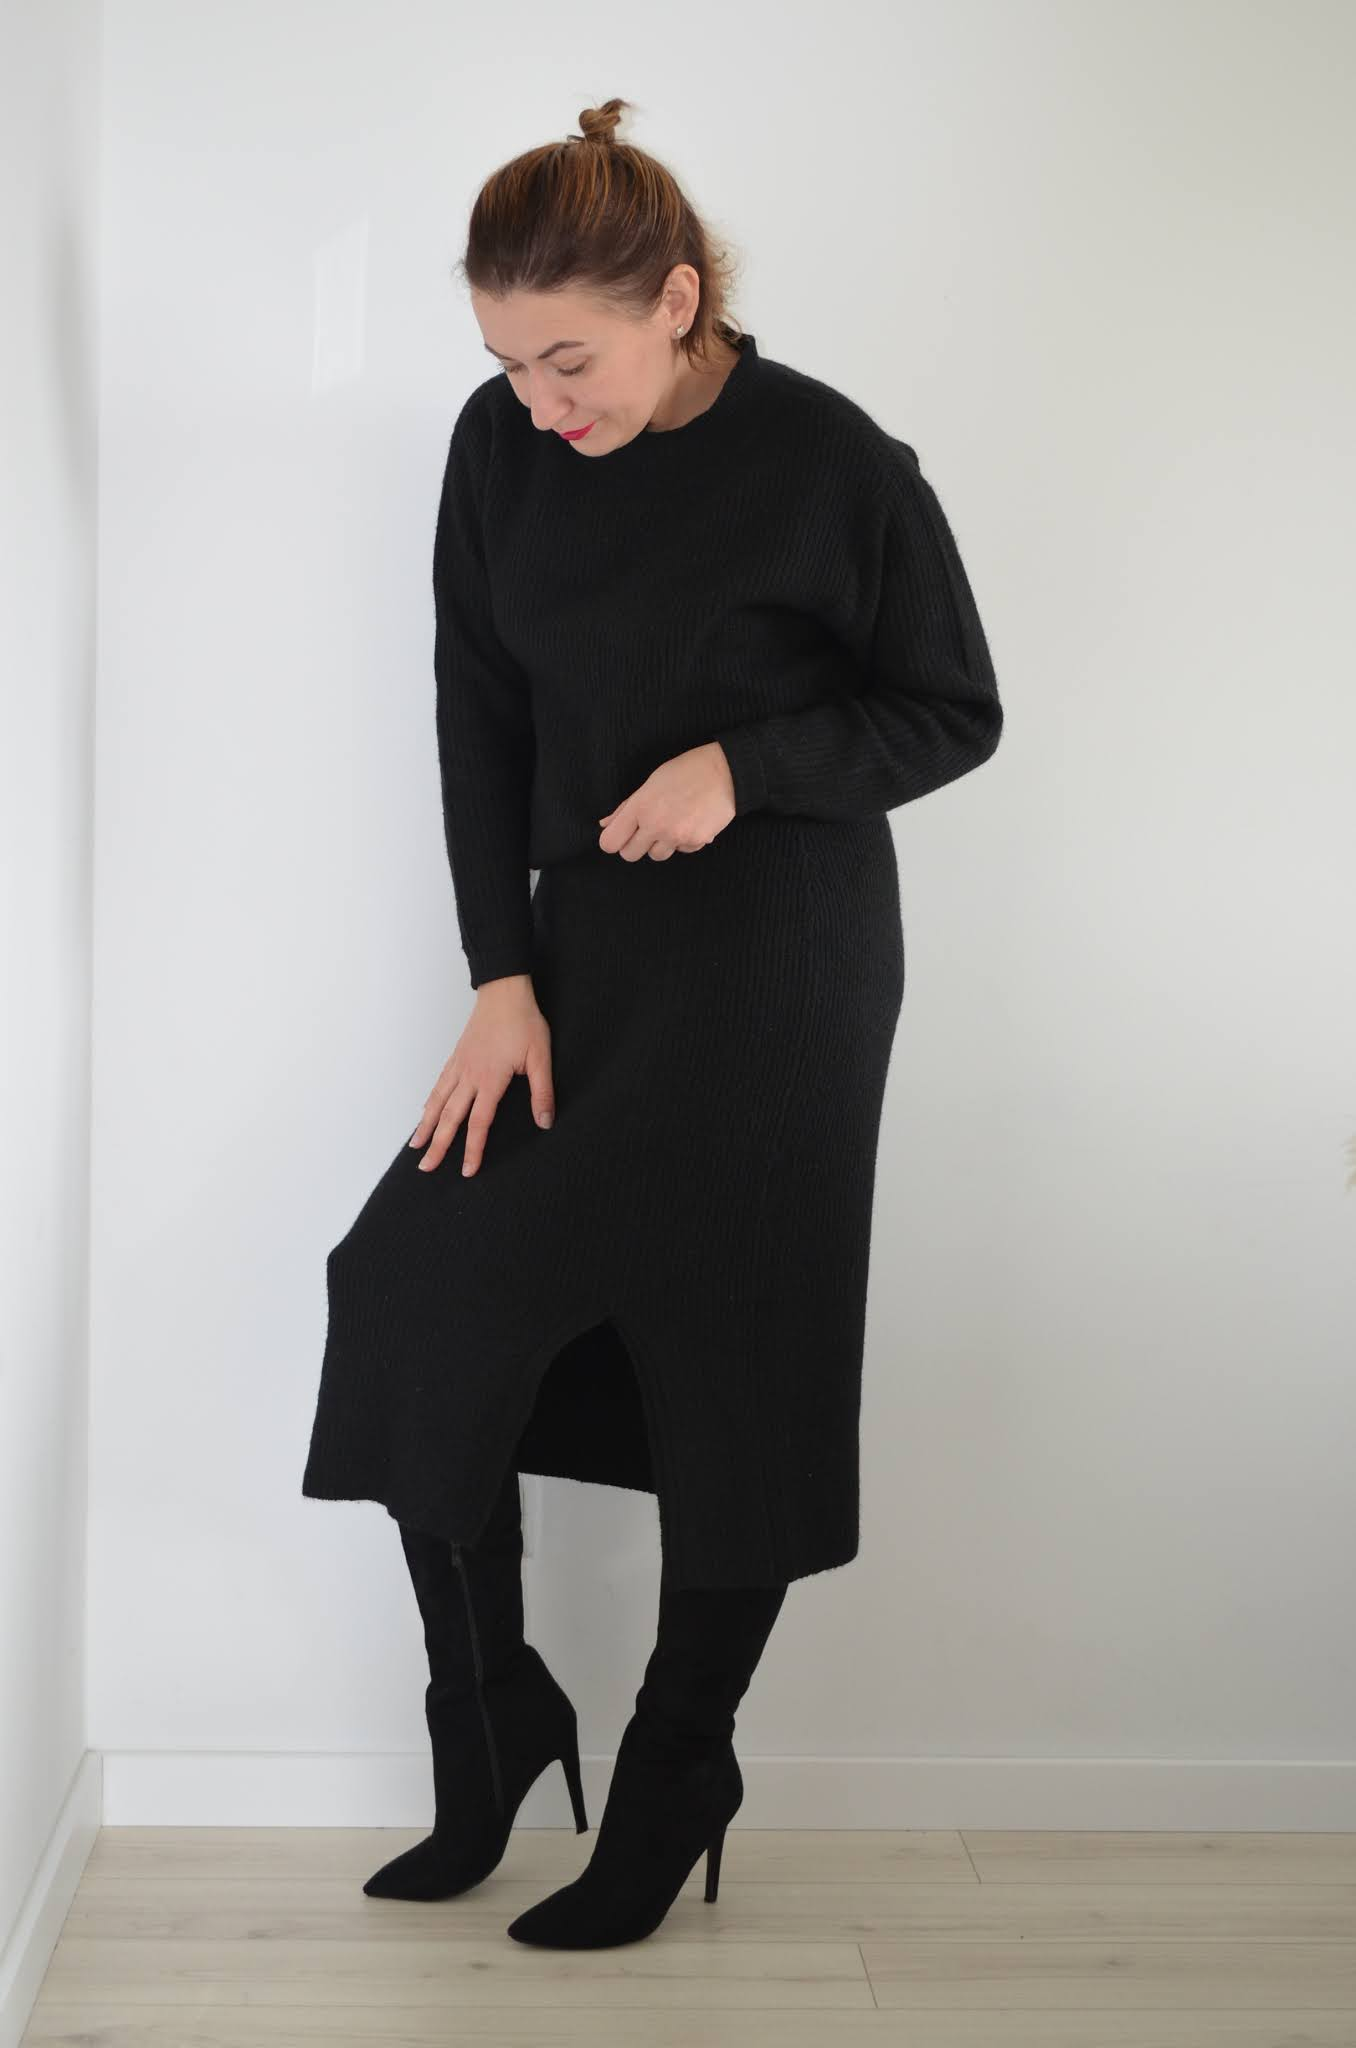 black total look;all black everything;dzianinowy czarny komplet Bonprix;kożuch Zara;fashion;moda;wysokie kozaki Zara;czarna stylizacja;blogerka modowa Wrocław;40+;40plusfashion;40plusstyle;